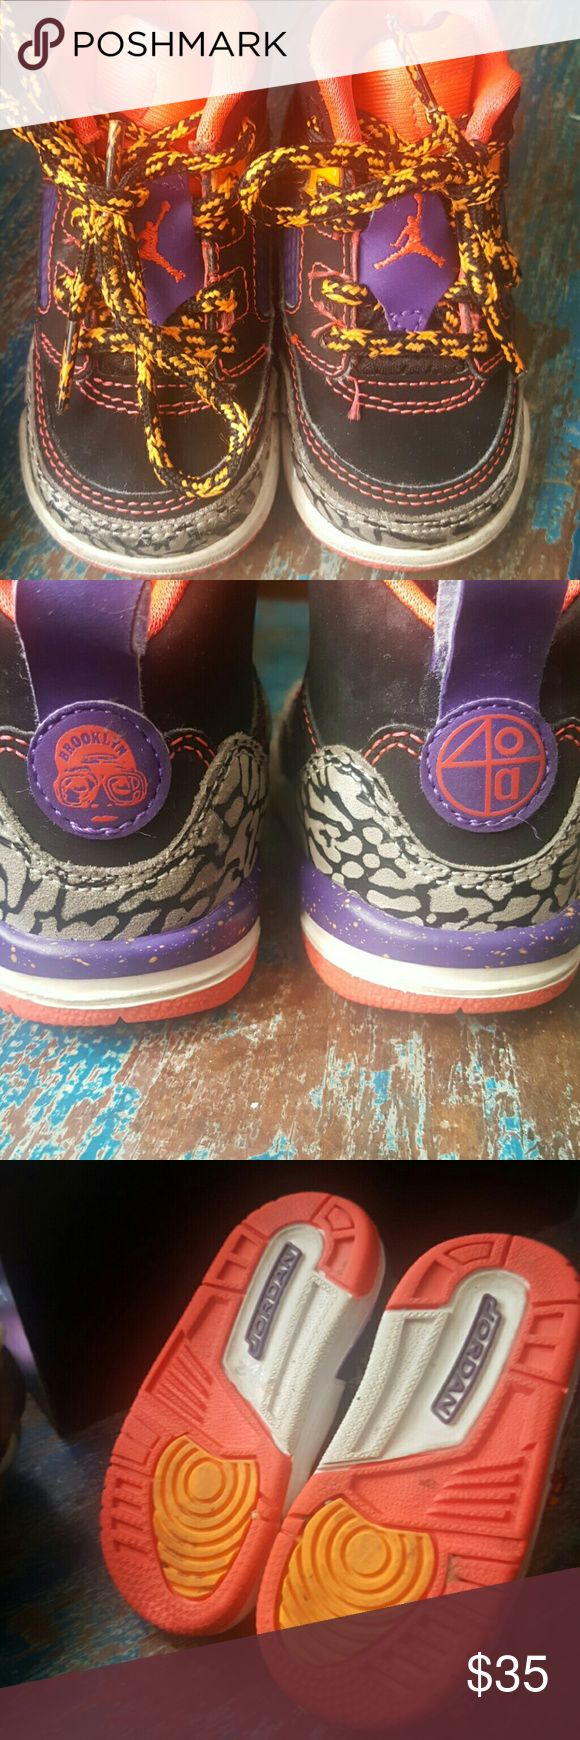 Air Jordan Spike Lee/Morris  40 acres and a Mule Rare memorabilia Baby/Toddler Air Jordans Great condition. Clean inside and out.Made famous by director Spike Lee these are one of a kind. Unisex Nike Shoes Sneakers